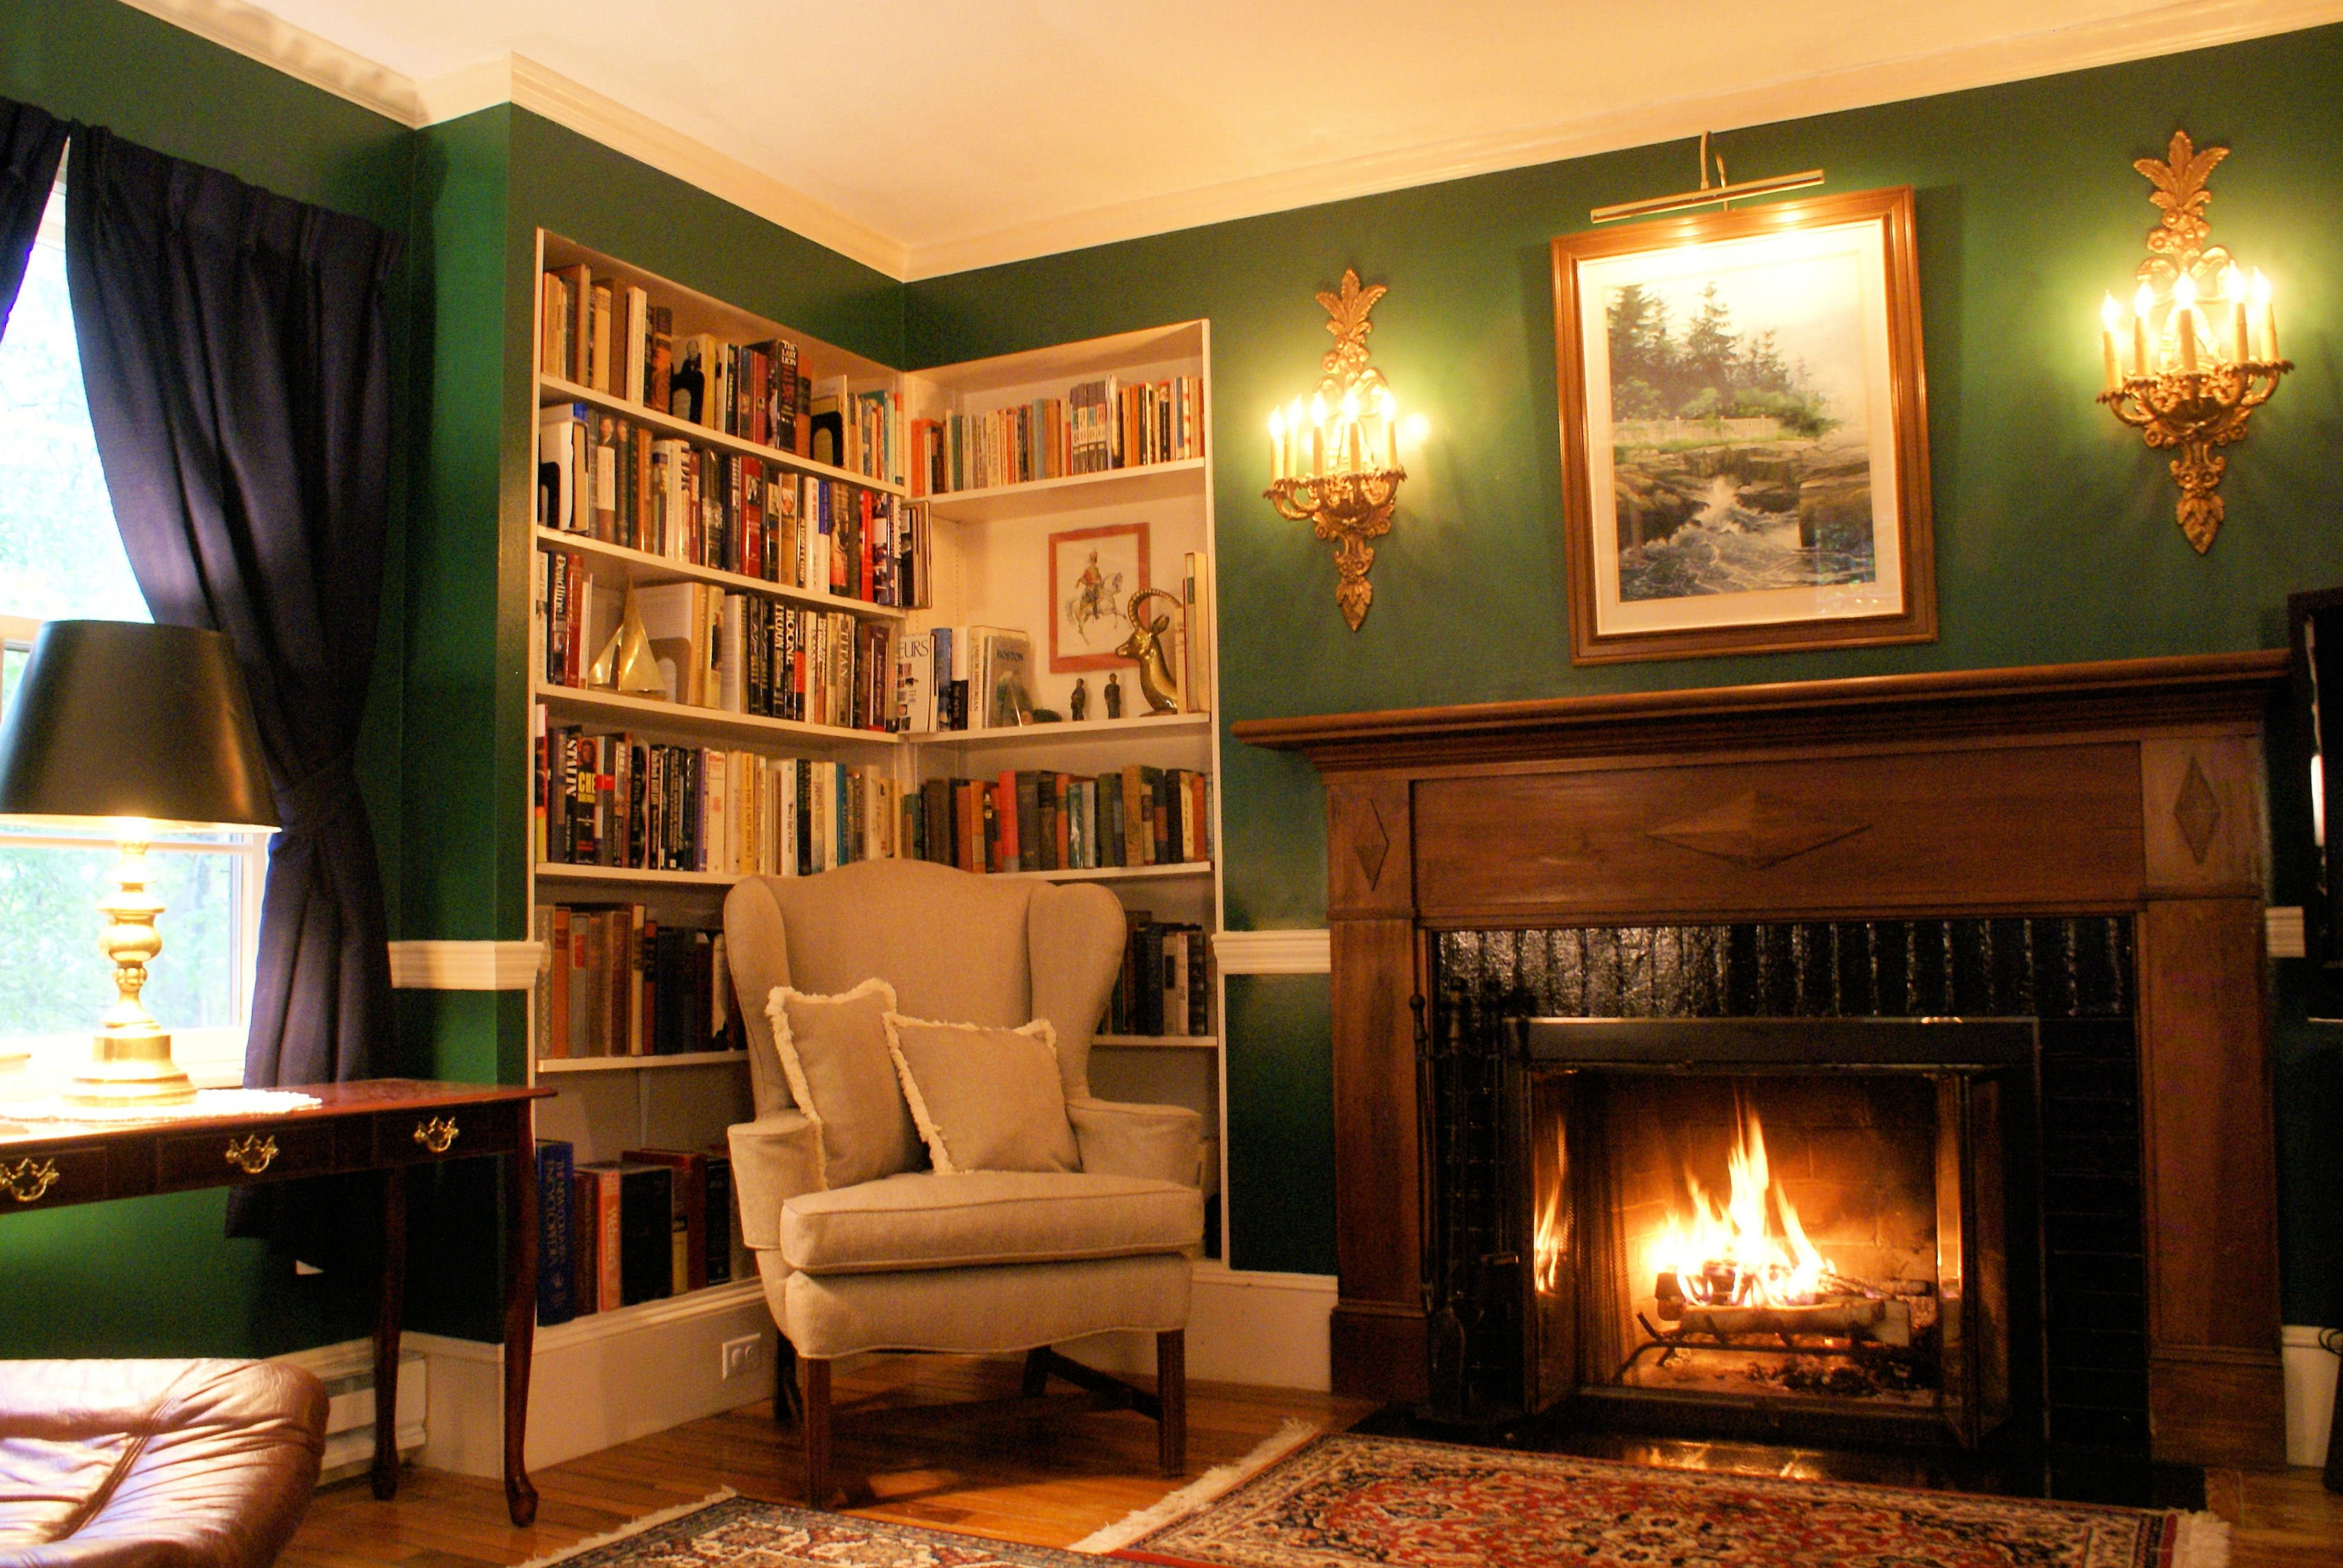 Library. Antiques (Astor wall sconces). Military history collectibles. Oriental rugs, leather seating. Drapes are Maine flags.